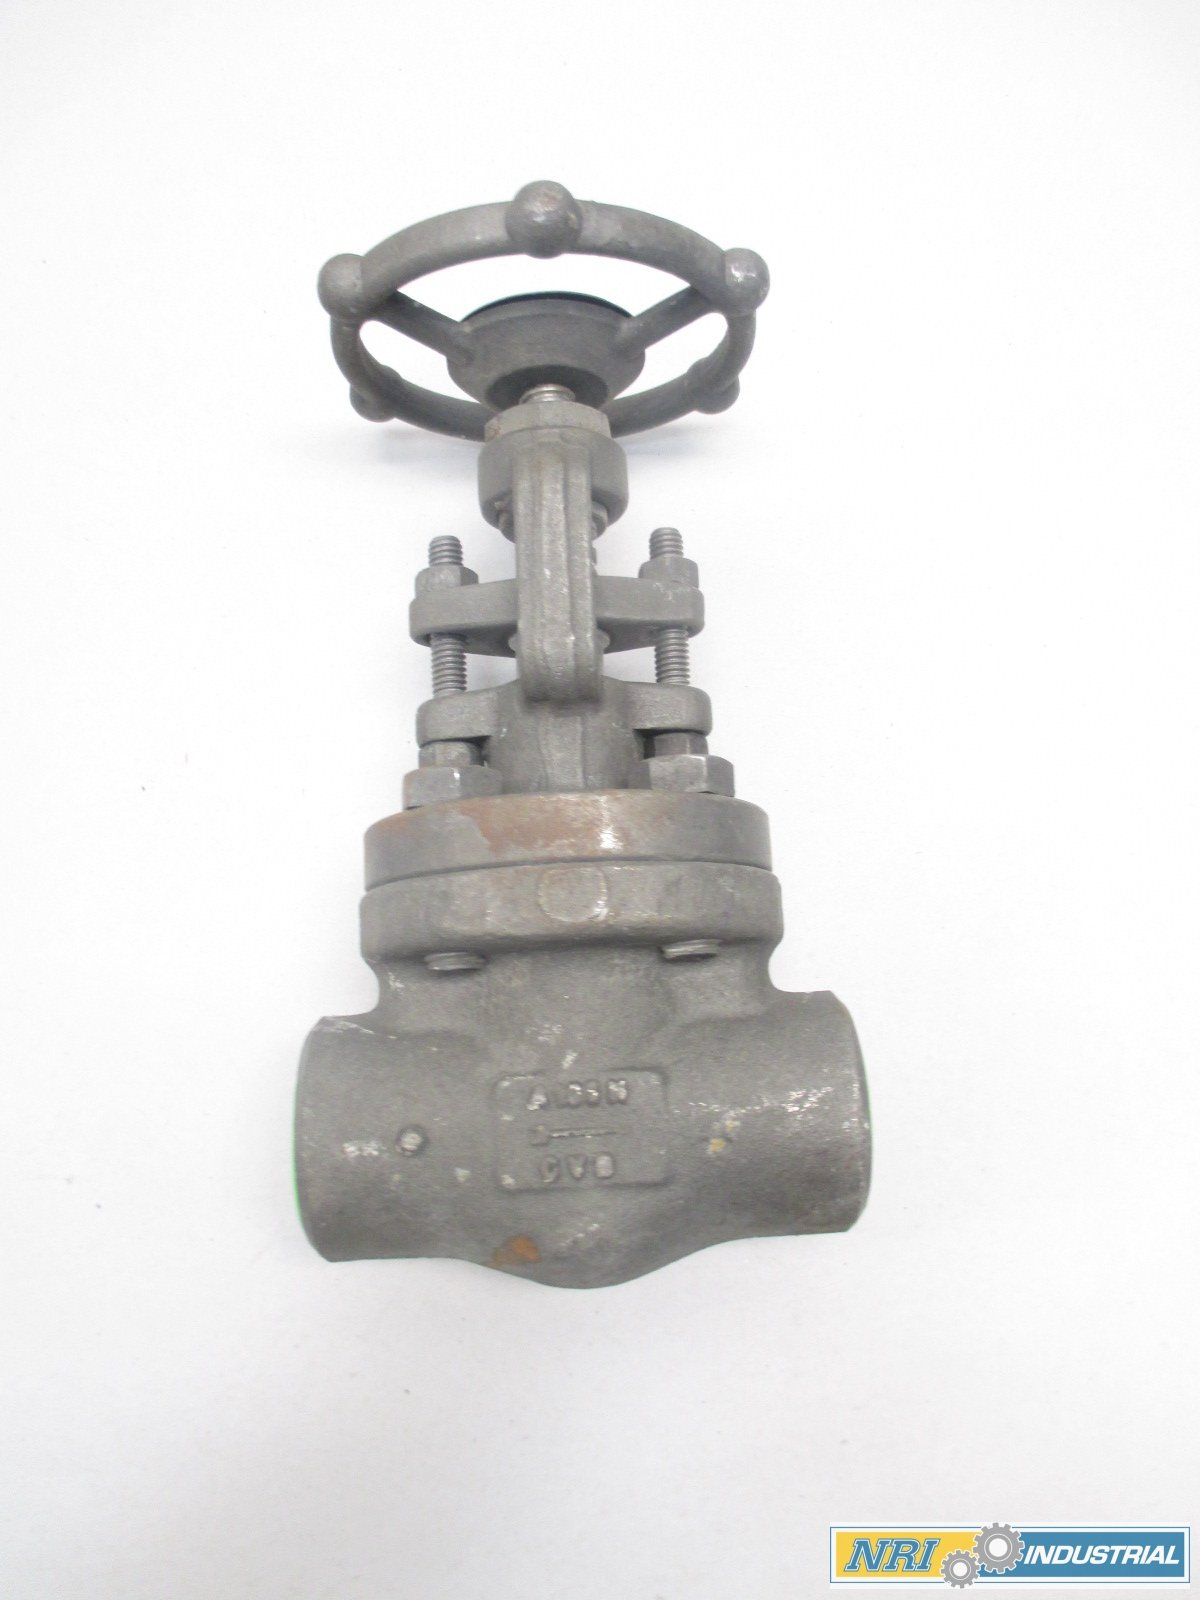 NEW BONNEY FORGE HL 31 1 IN STEEL SOCKET WELD GLOBE VALVE D478398